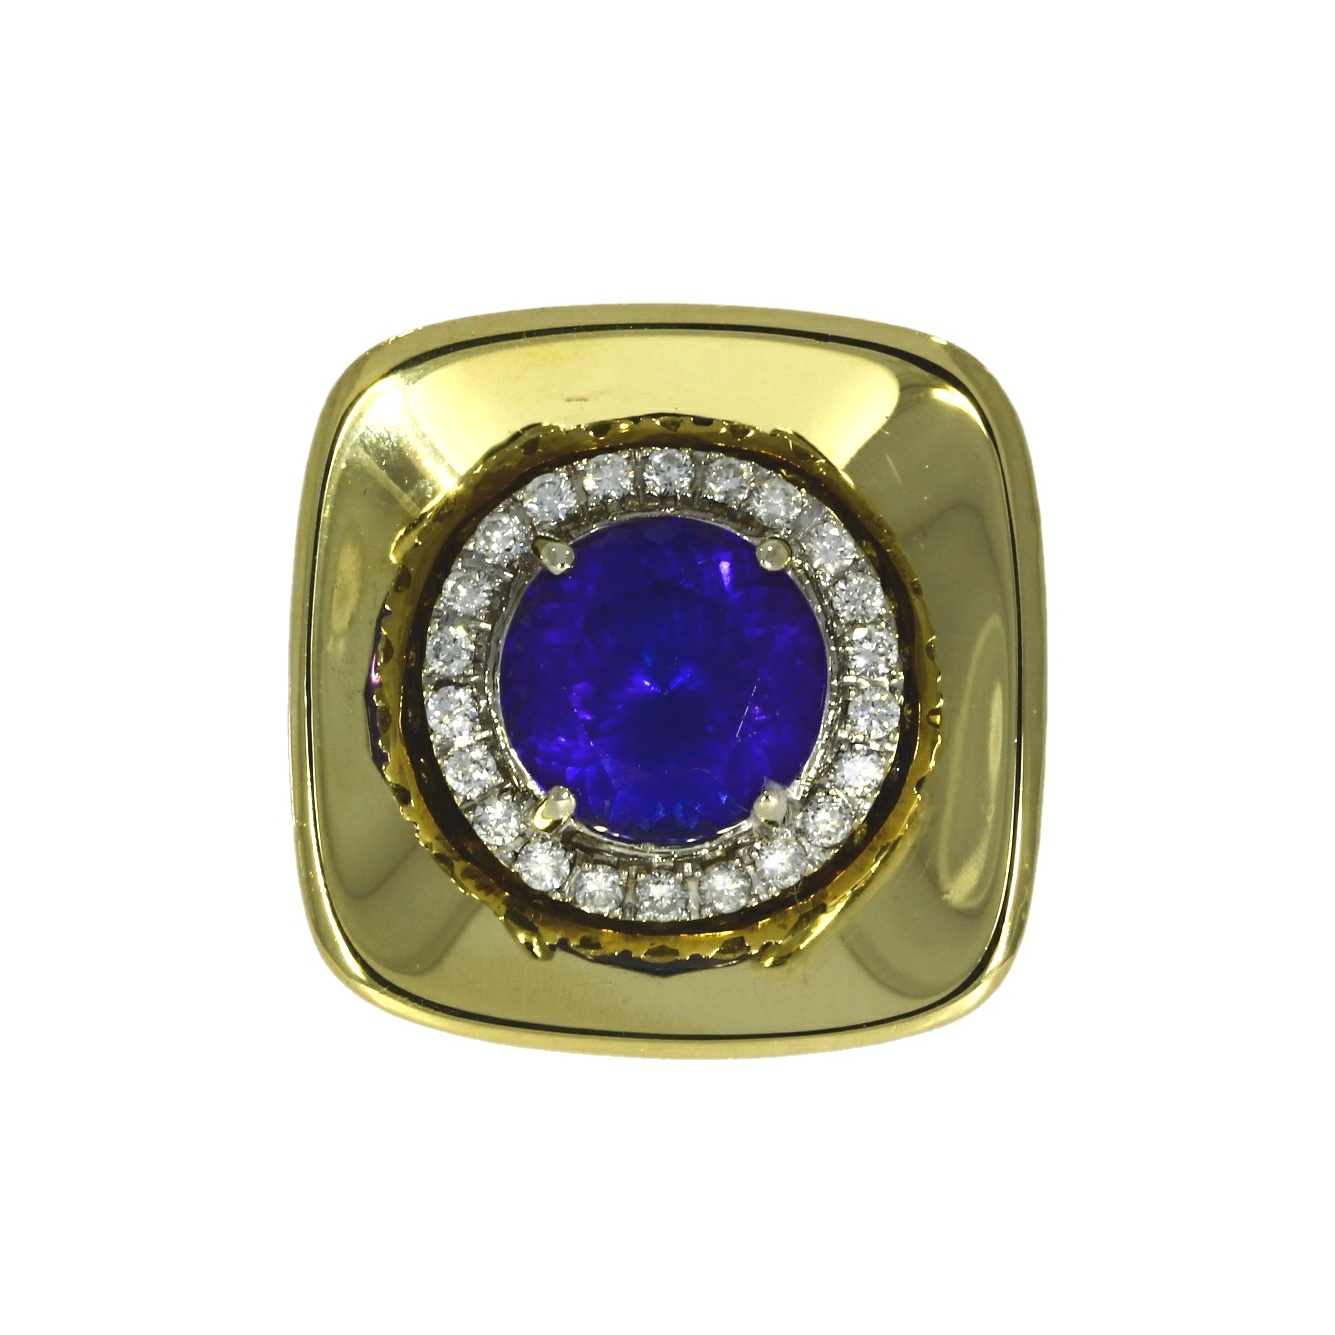 18ct yellow gold, tanzanite & diamond dress ring